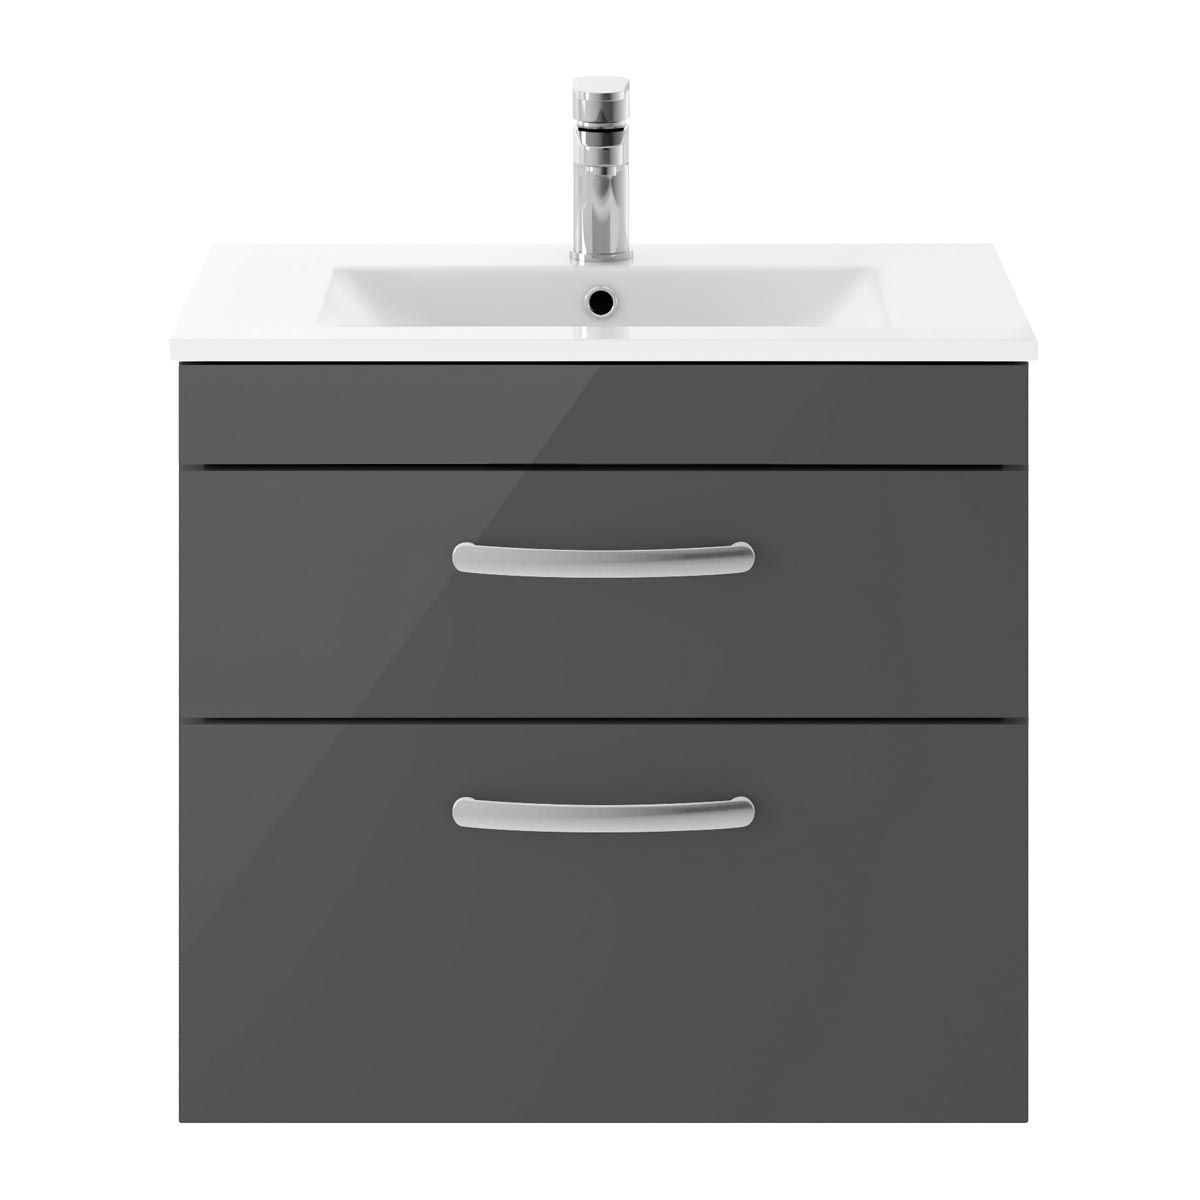 Nuie Athena Gloss Grey 2 Drawer Wall Hung Vanity Unit with 18mm Profile Basin 600mm